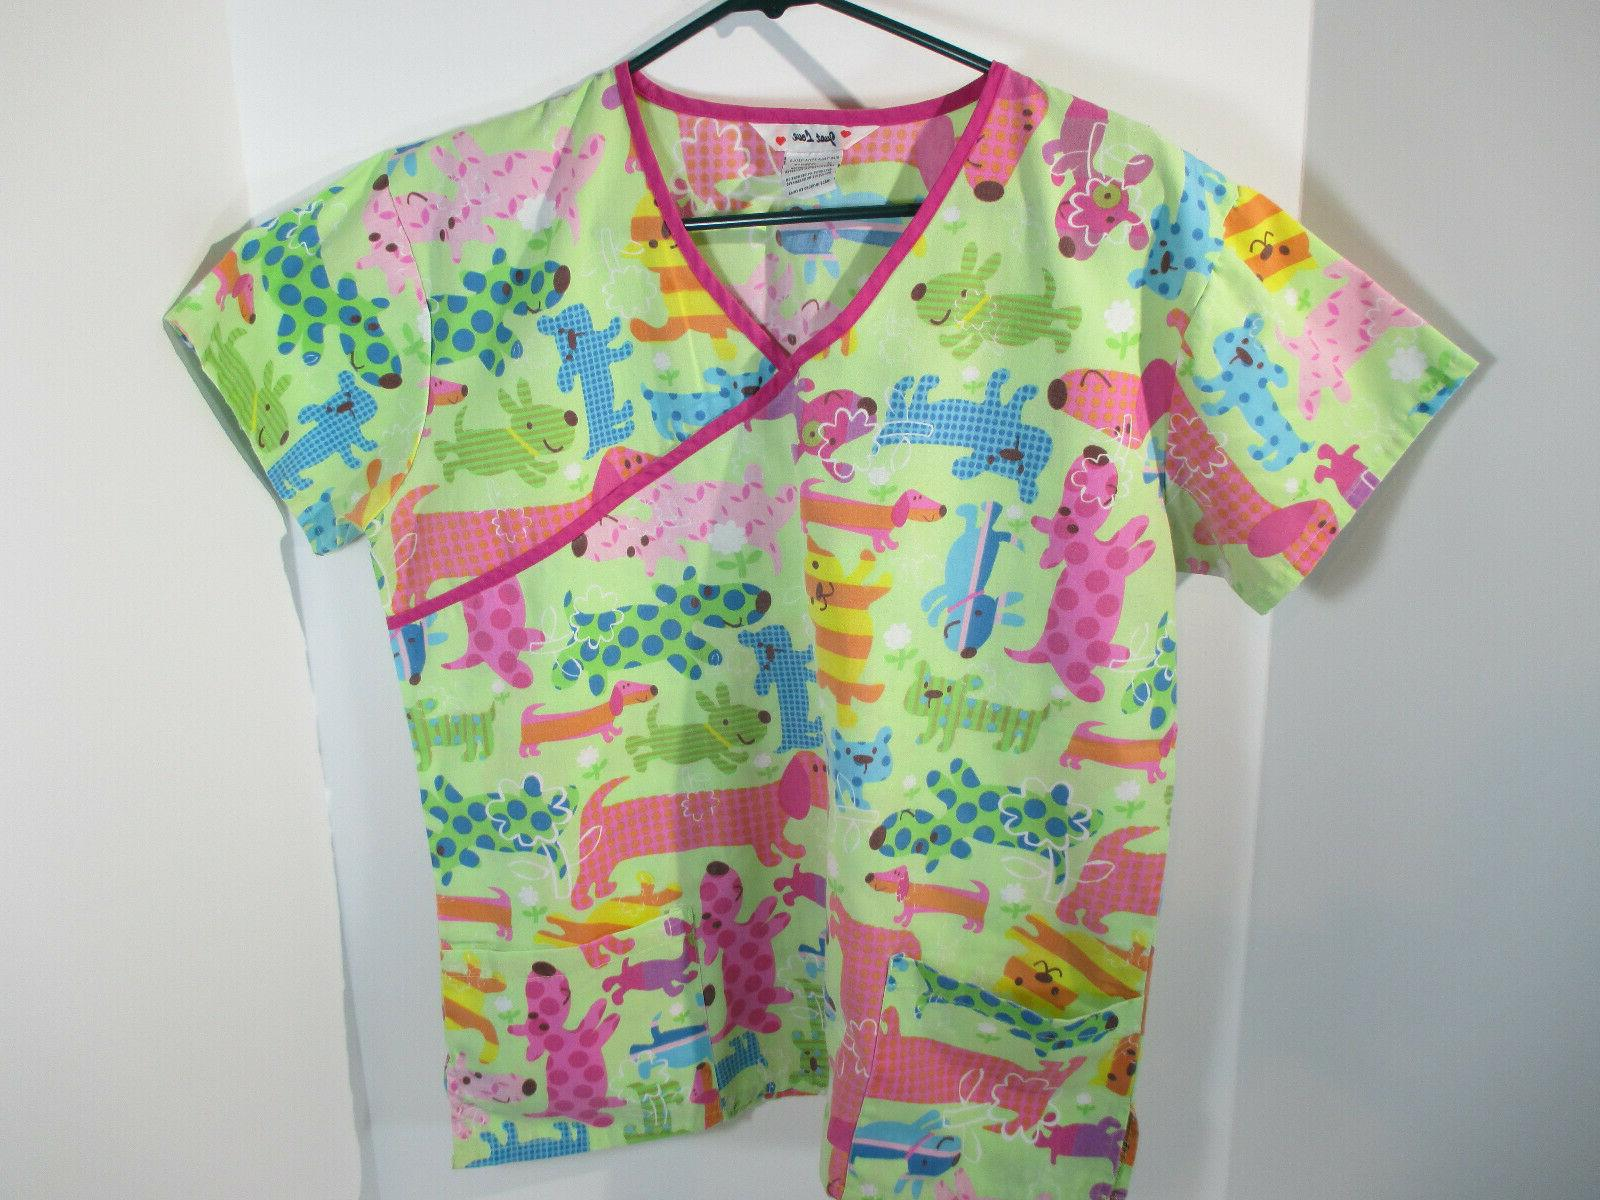 Scrub Top Dogs Just Love Size M Green Pink Pocket S/S V Neck